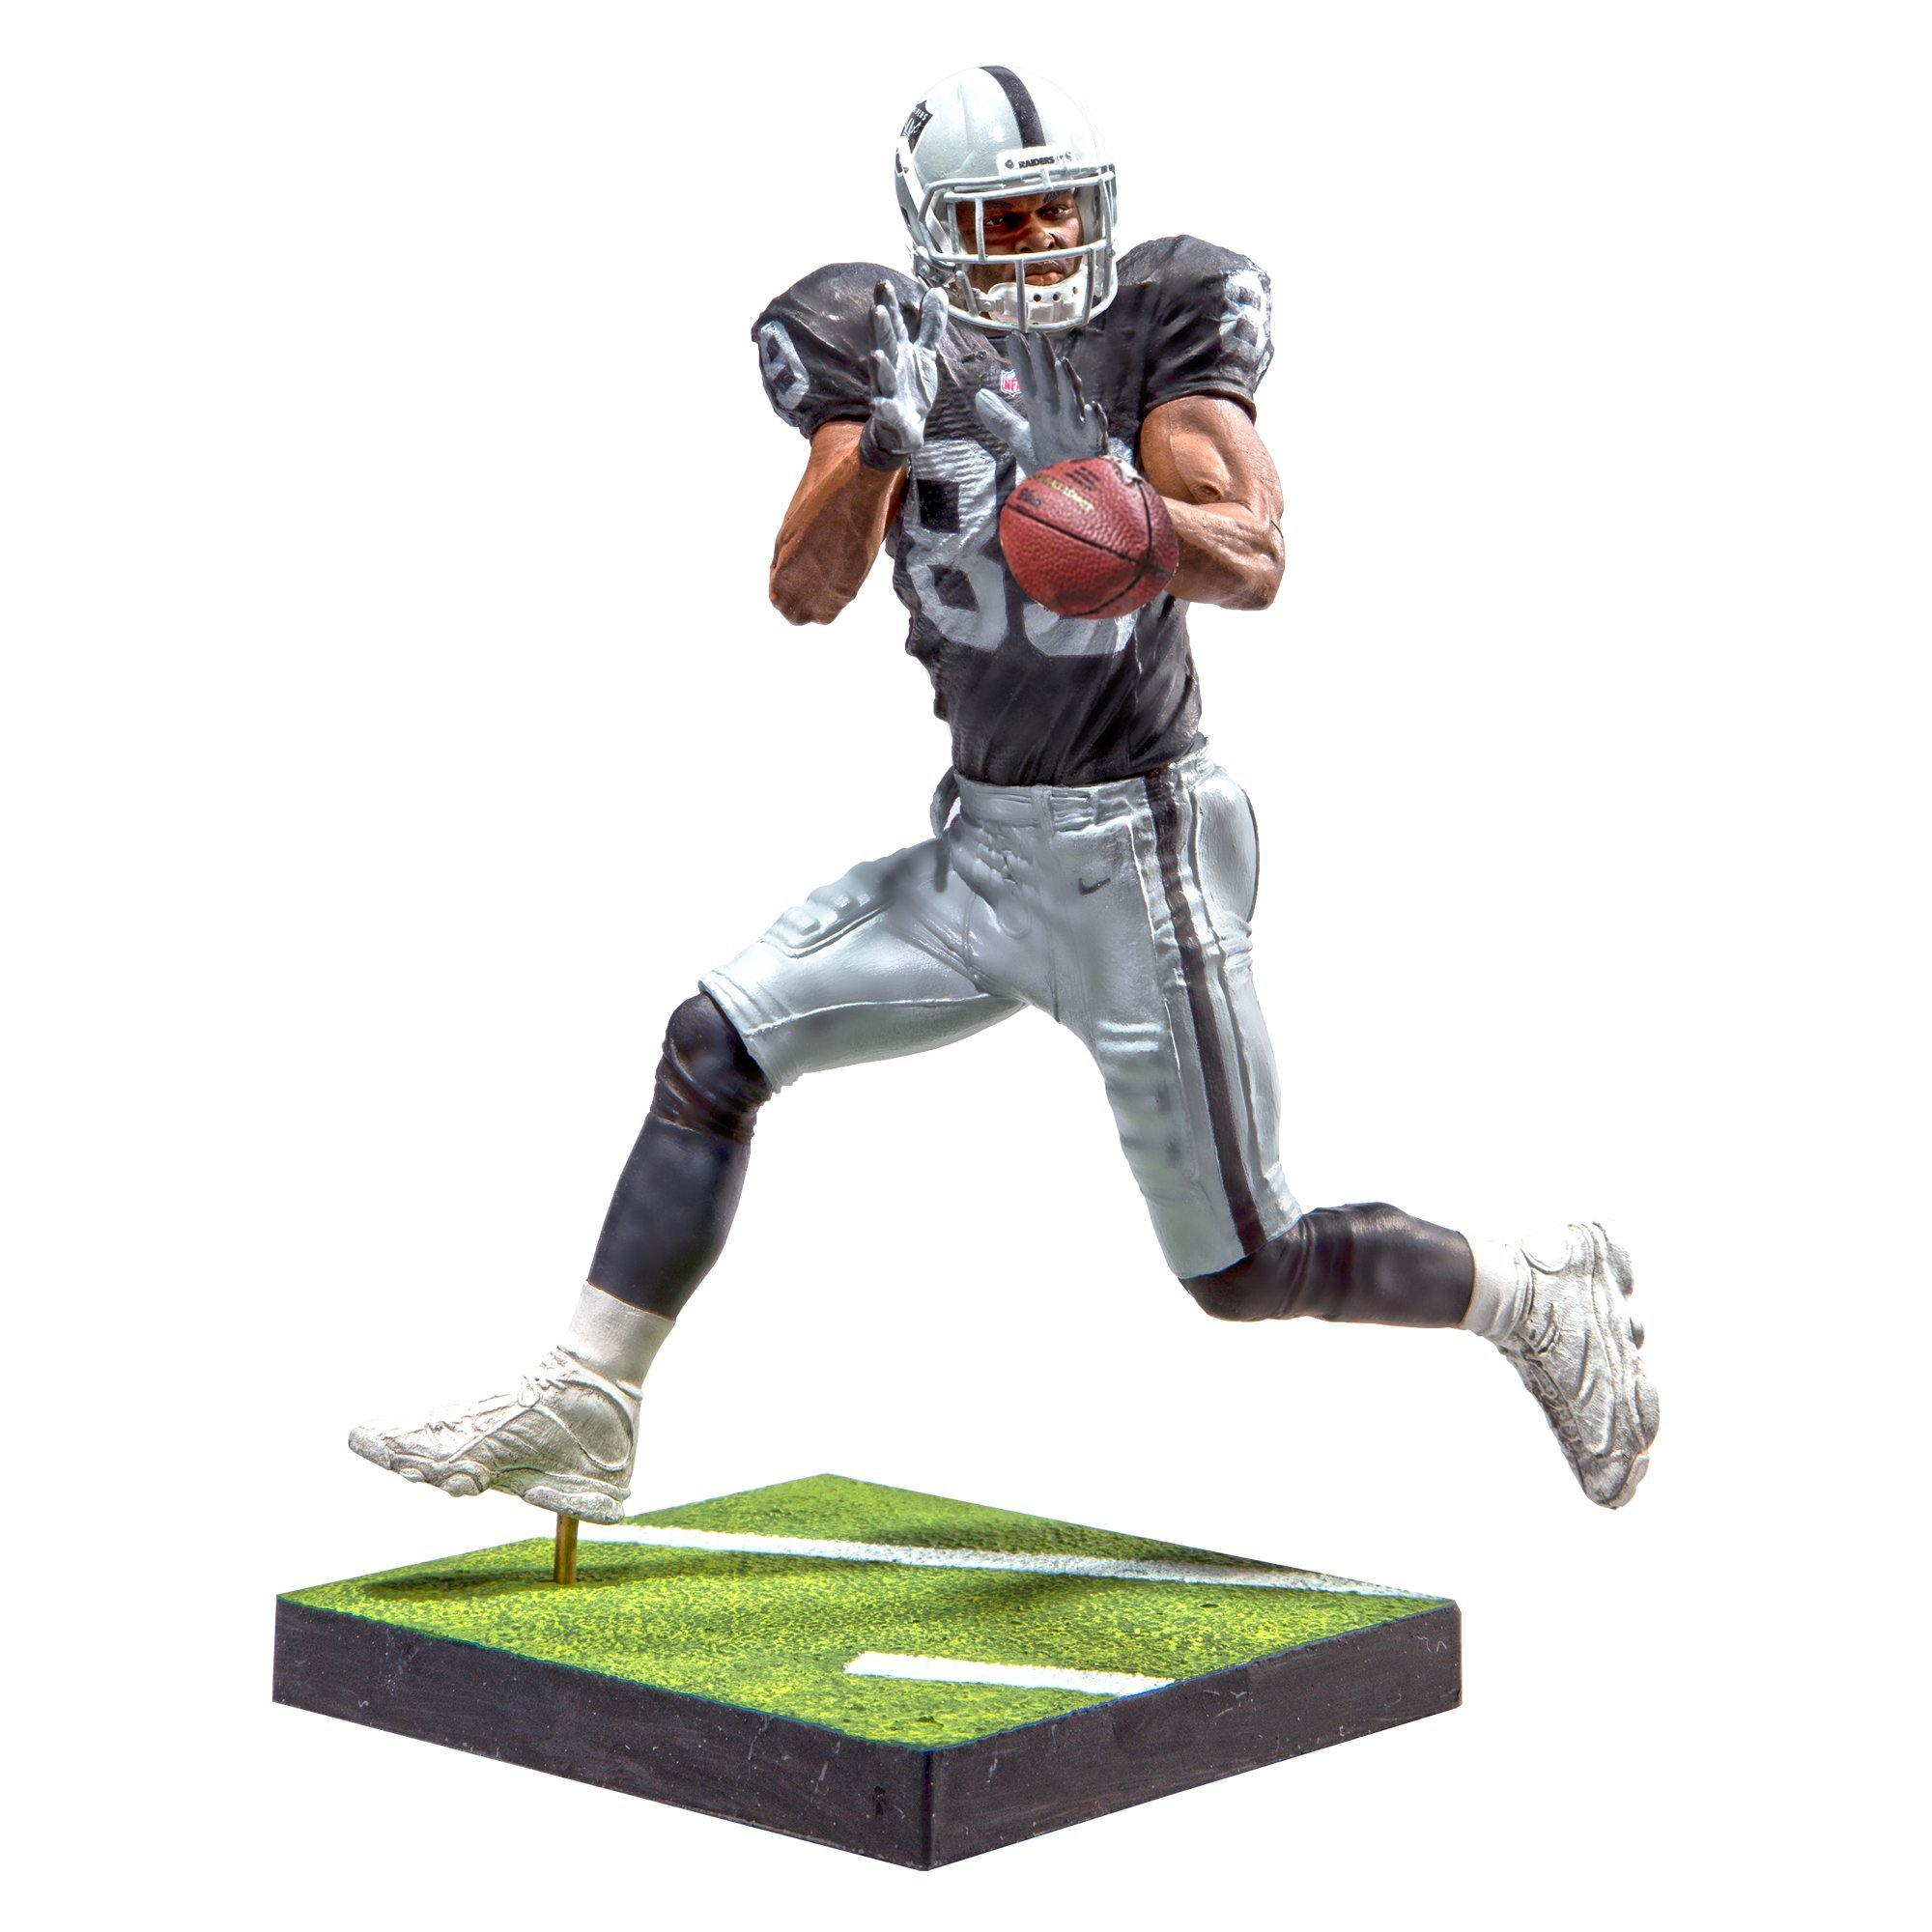 Buy McFarlane Toys EA Sports Madden NFL 17 Ultimate Team Amari Cooper  Oakland Raiders Action Figure in Cheap Price on m.alibaba.com 03ad54ab1